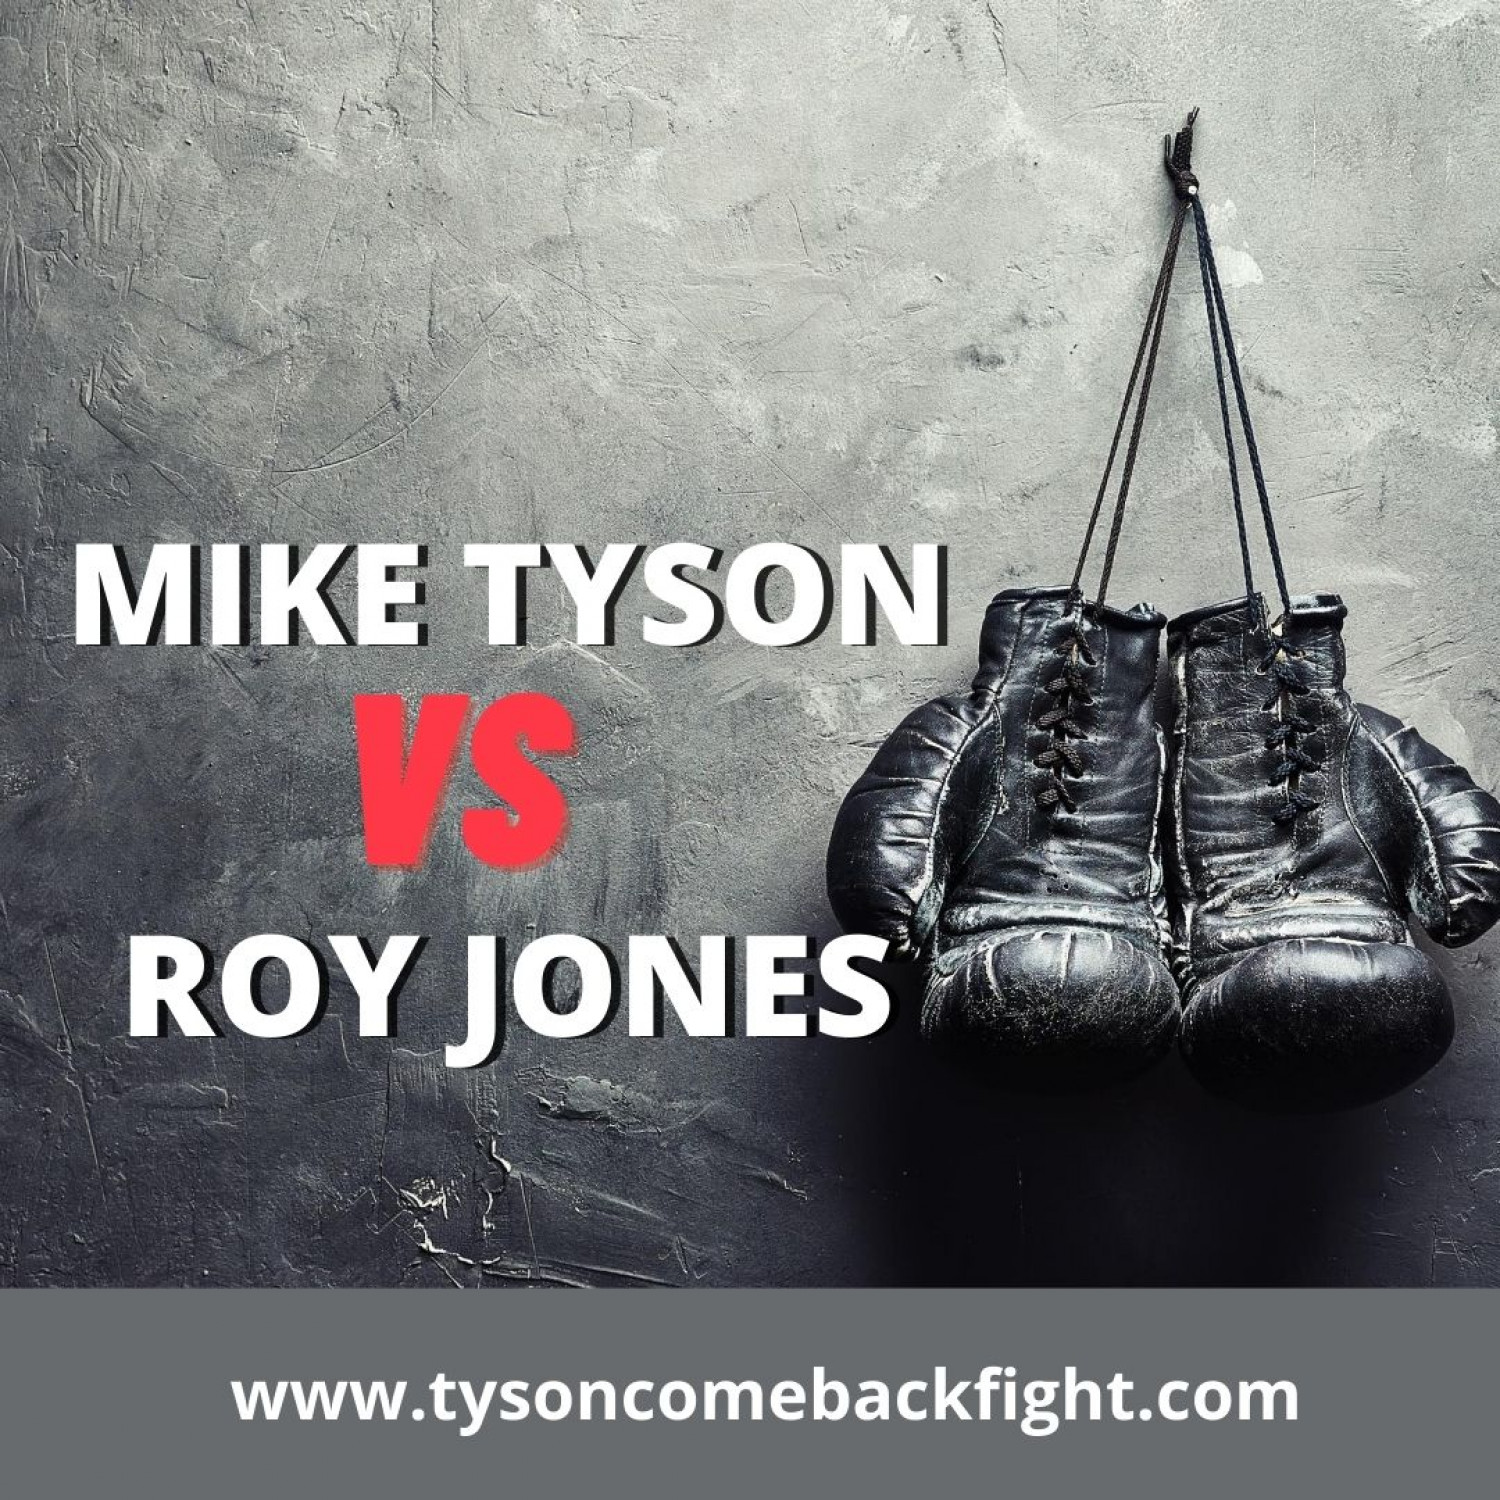 The Mike Tyson Vs Roy Jones Boxing Match Infographic